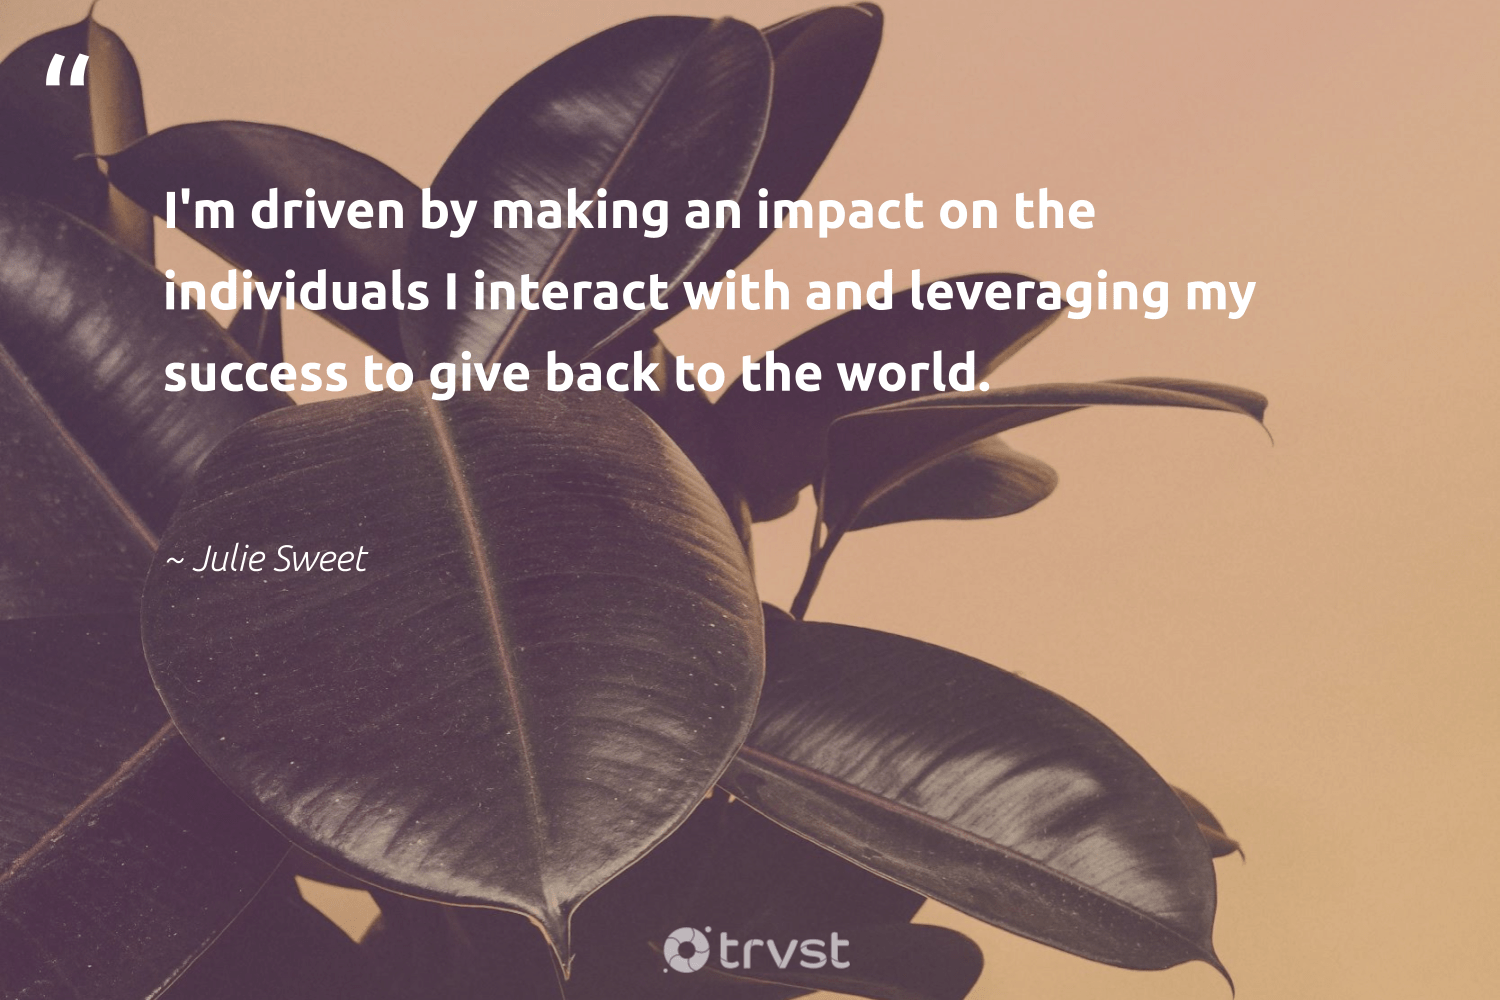 """""""I'm driven by making an impact on the individuals I interact with and leveraging my success to give back to the world.""""  - Julie Sweet #trvst #quotes #impact #giveback #success #timemanagement #socialchange #begreat #dogood #focus #makeadifference #futureofwork"""